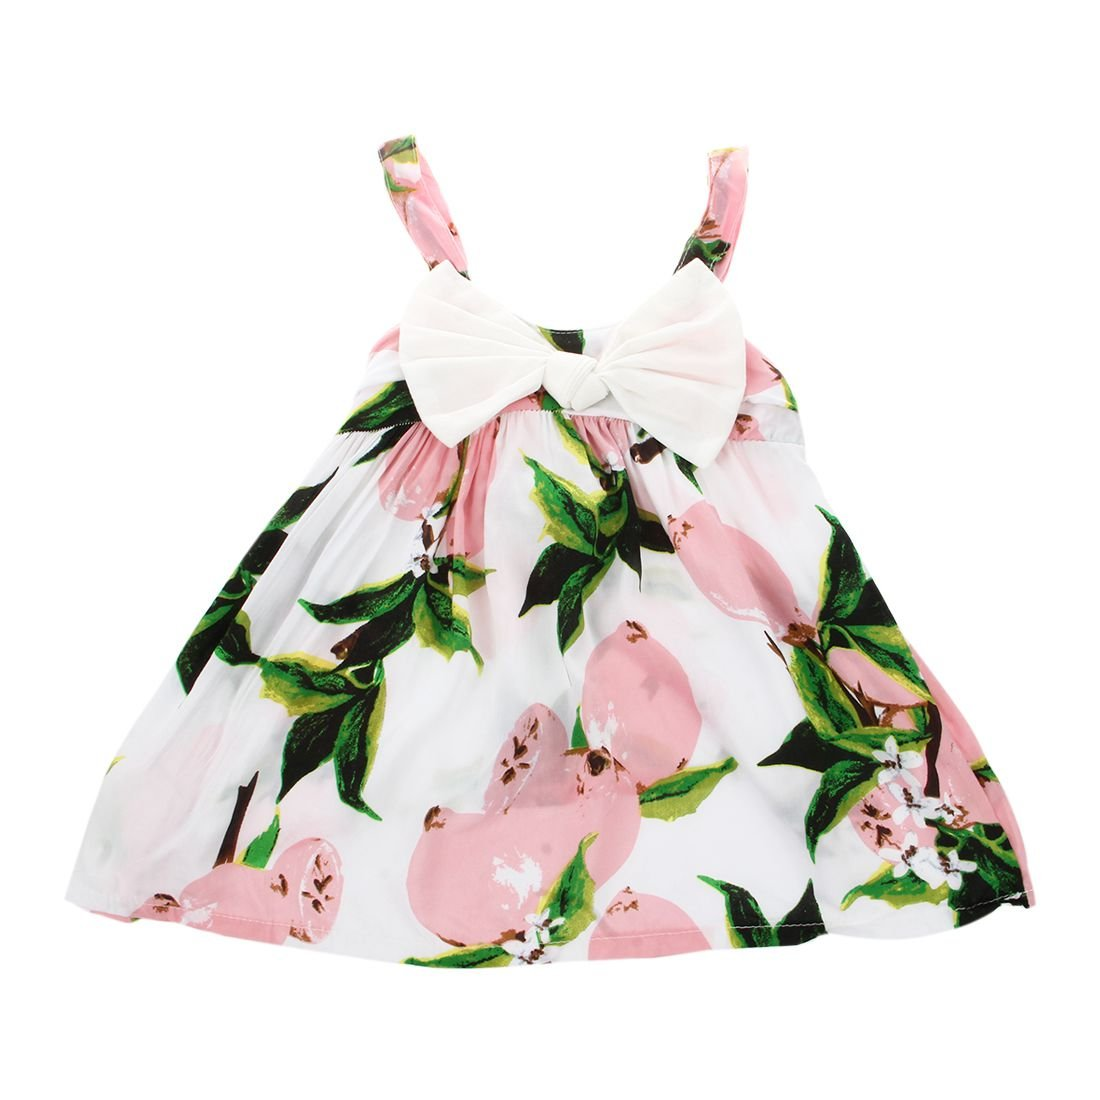 9cfbe03360 Amazon.com  SODIAL(R) Summer Infant Baby Girls Floral Dress Lemon Print  Bowknot Sundress Clothes